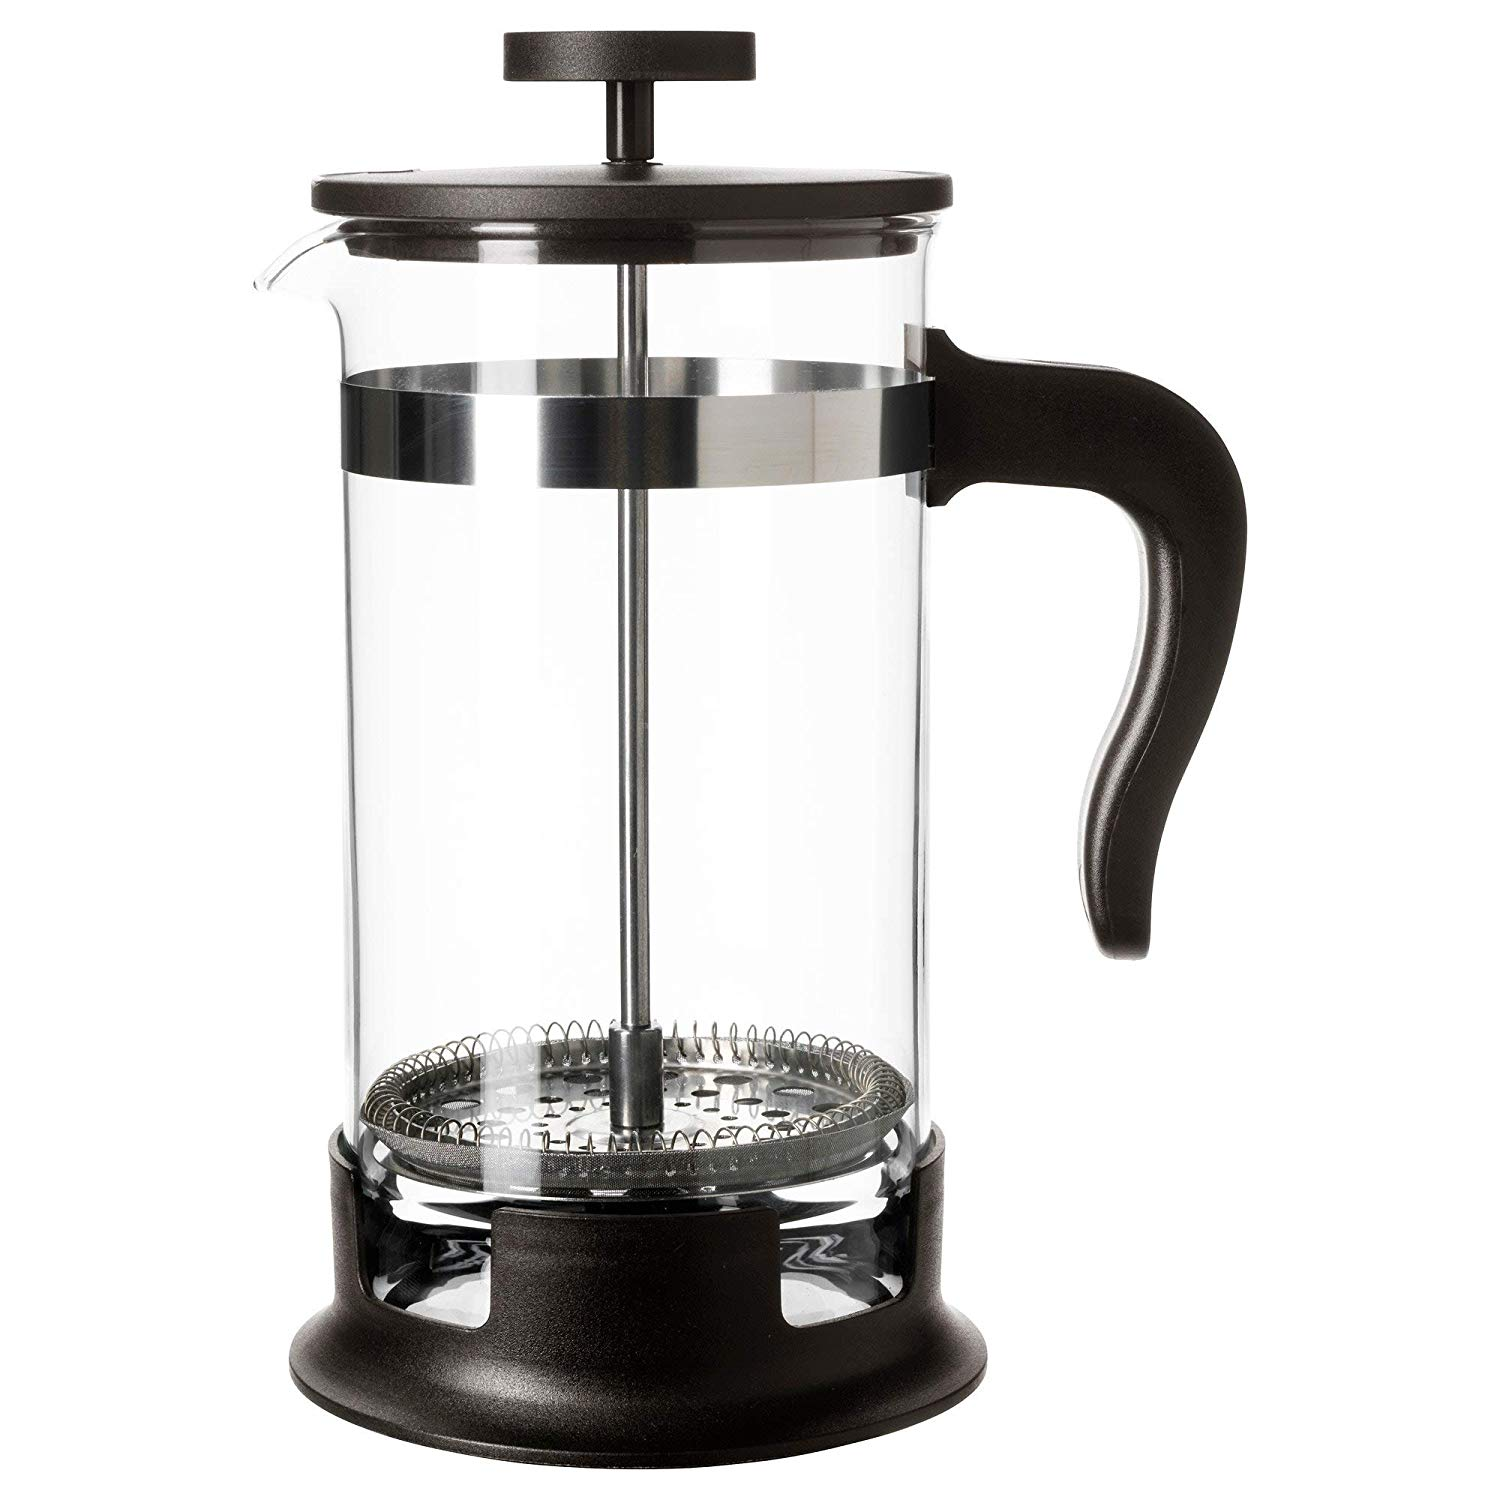 UPPHETTA Coffee/tea maker, glass, stainless steel, 1 l